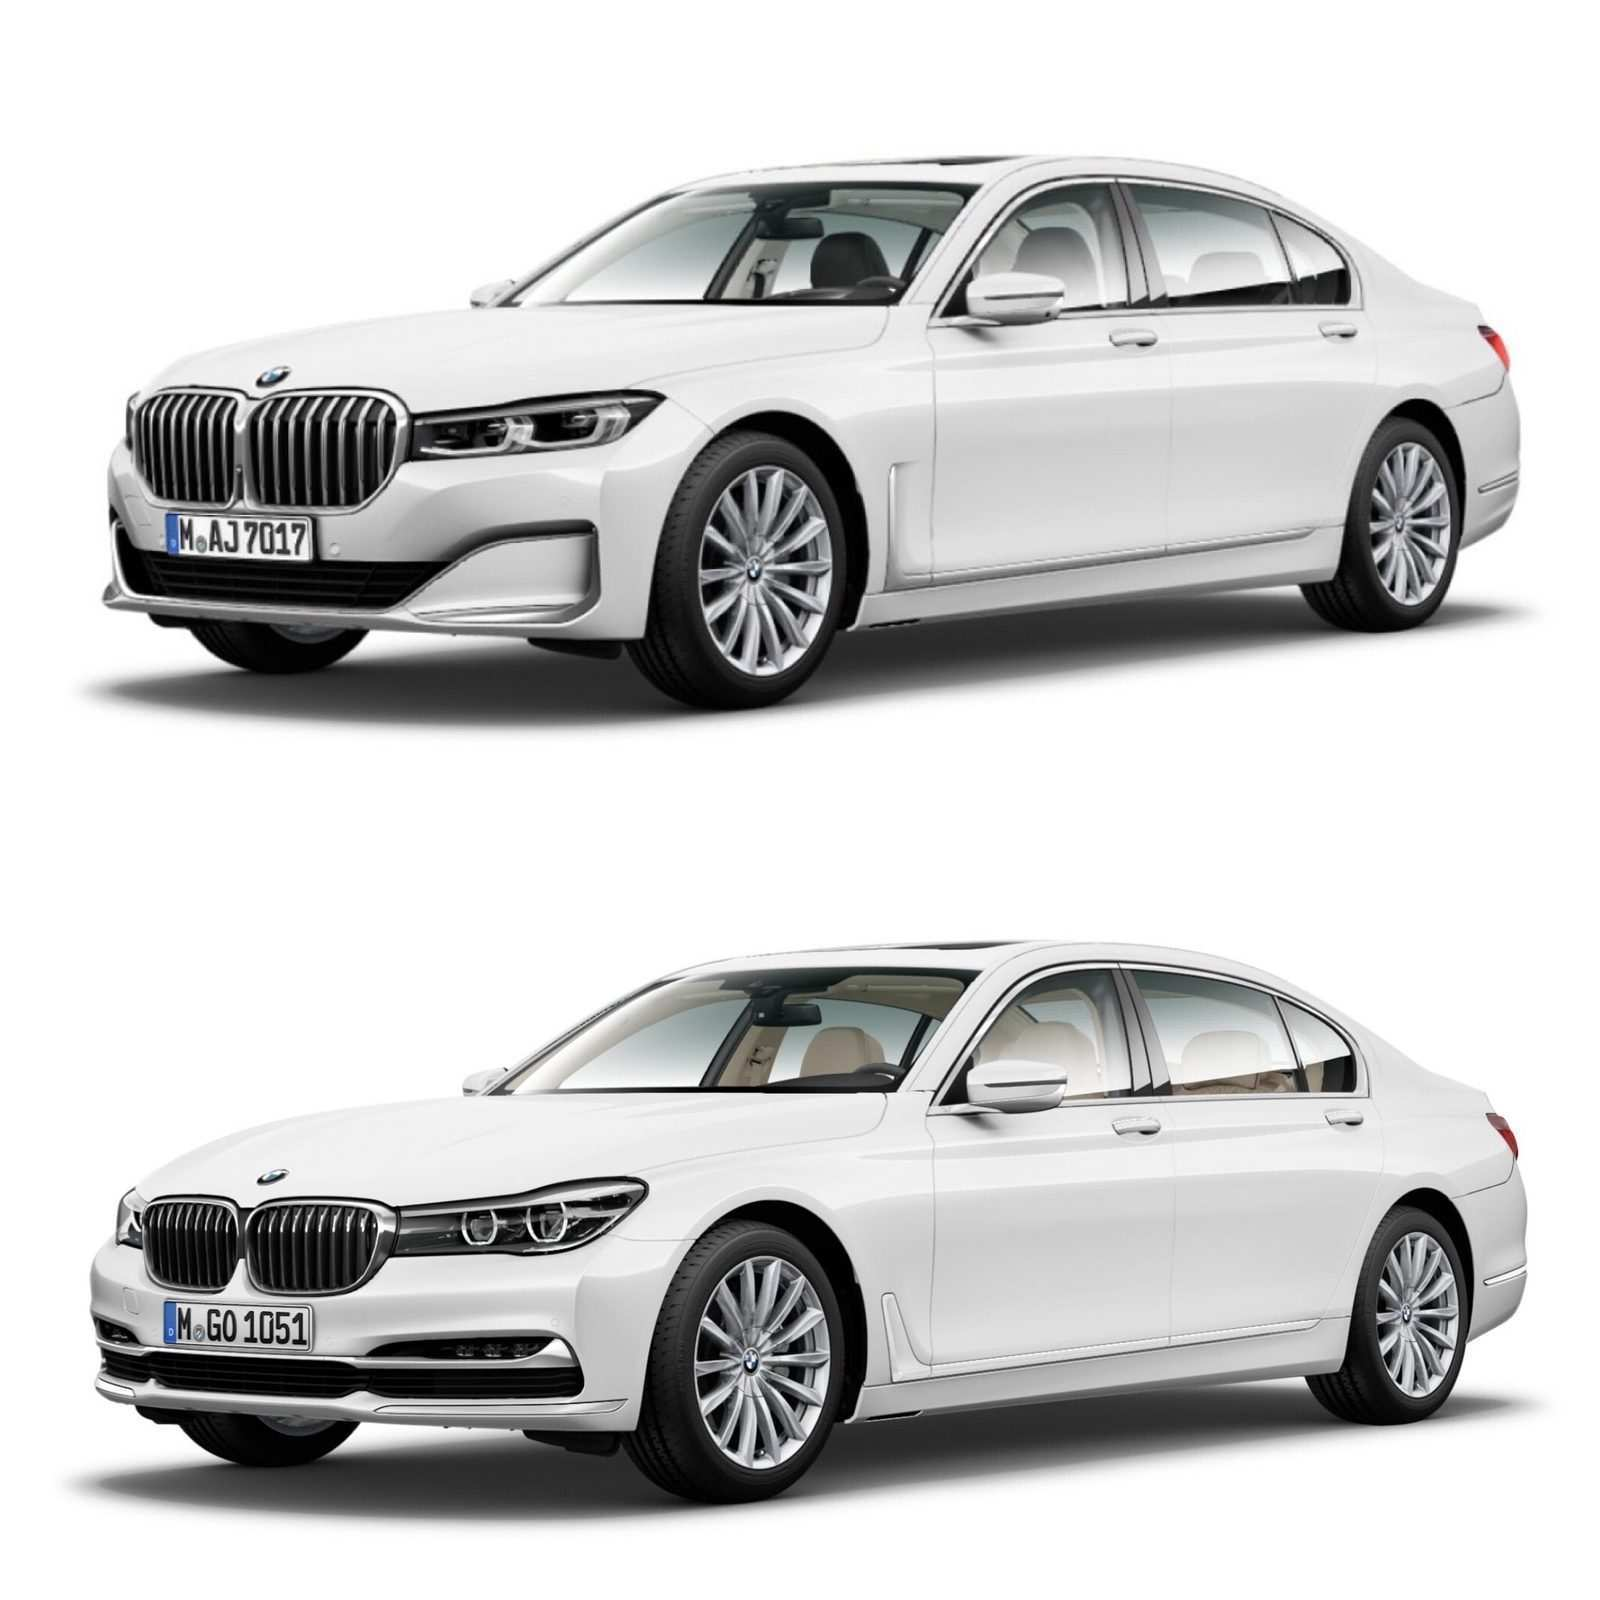 79 The BMW 7 Series 2020 Vs 2019 Concept